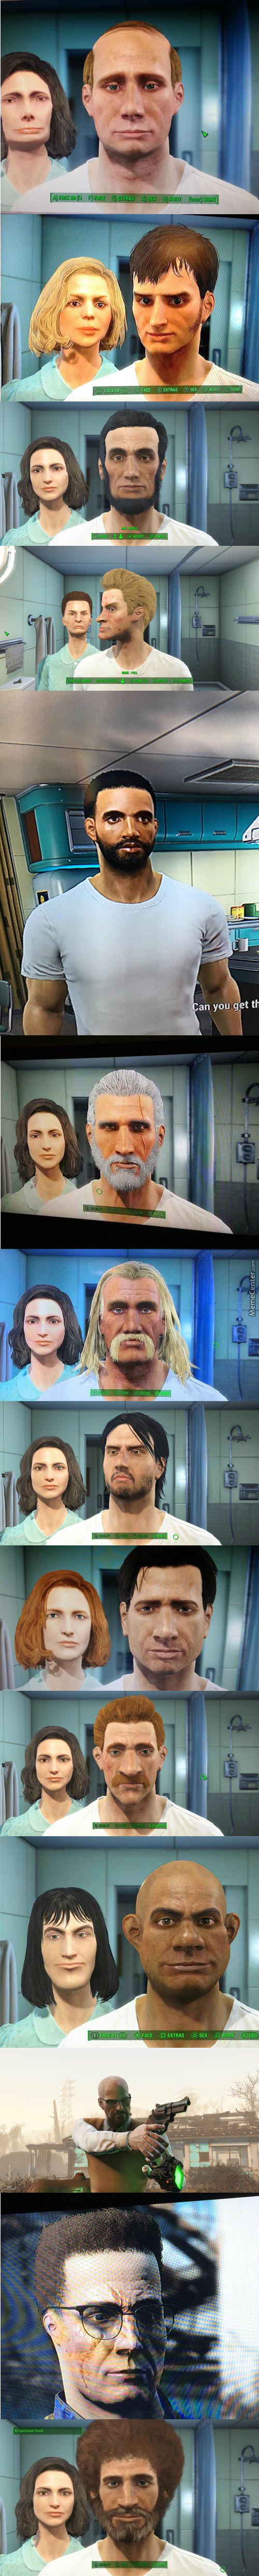 13 Famous People Recreated In Fallout 4. Can You Name Them All?